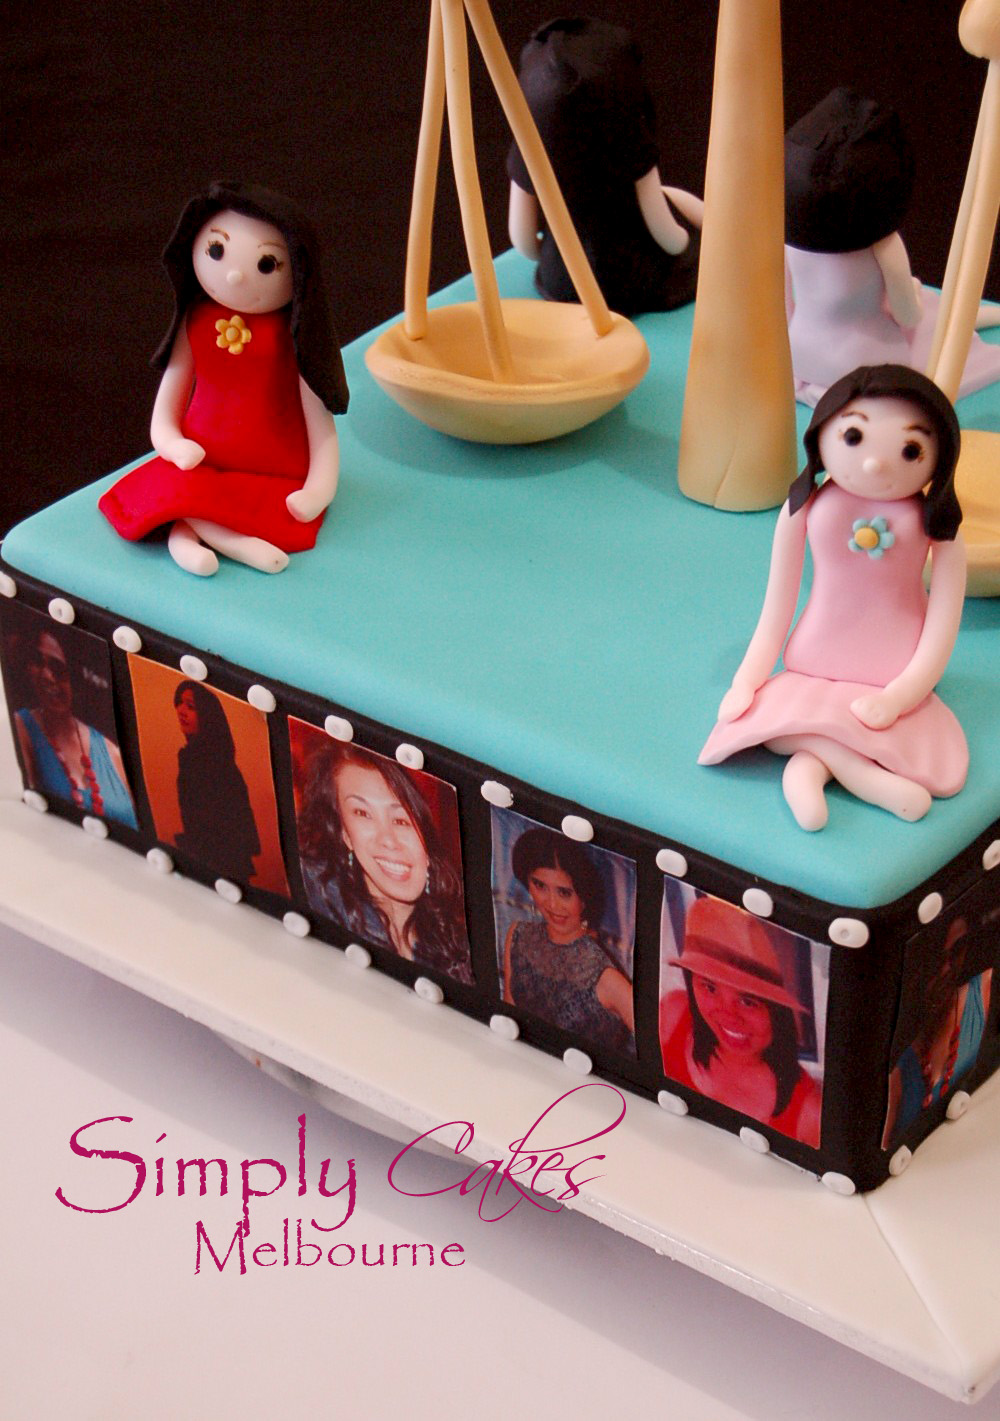 Simply Cakes Melbourne Libra Cake Themed For Libra Girls Birthday